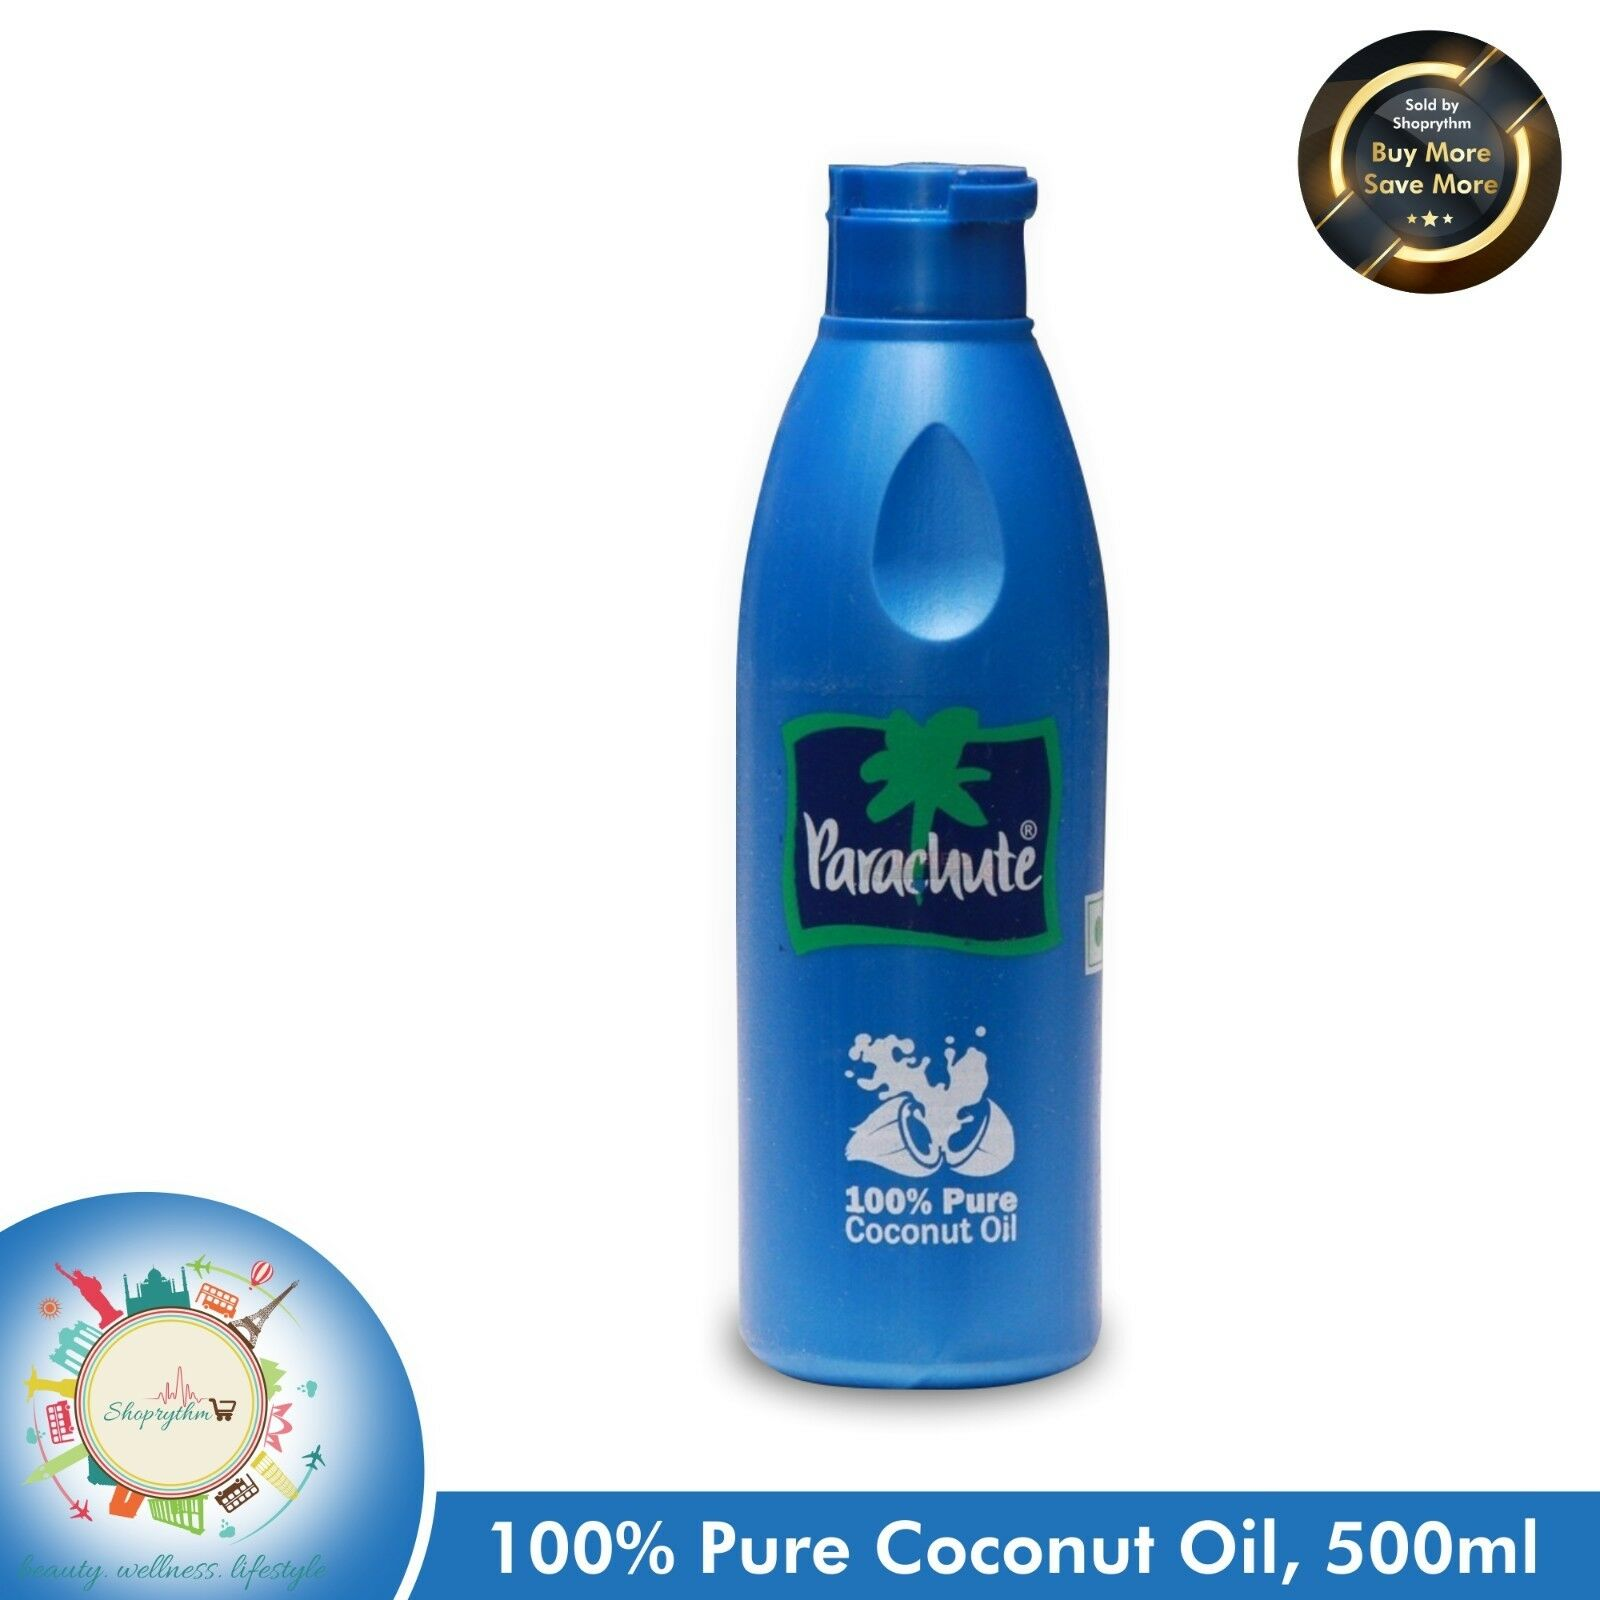 parachute hair oil Parachute gold introduces coconut oil based hair care products for the inner strength of your hair get robust, healthy hair by providing deep rooted nourishment with cocos nucifera.